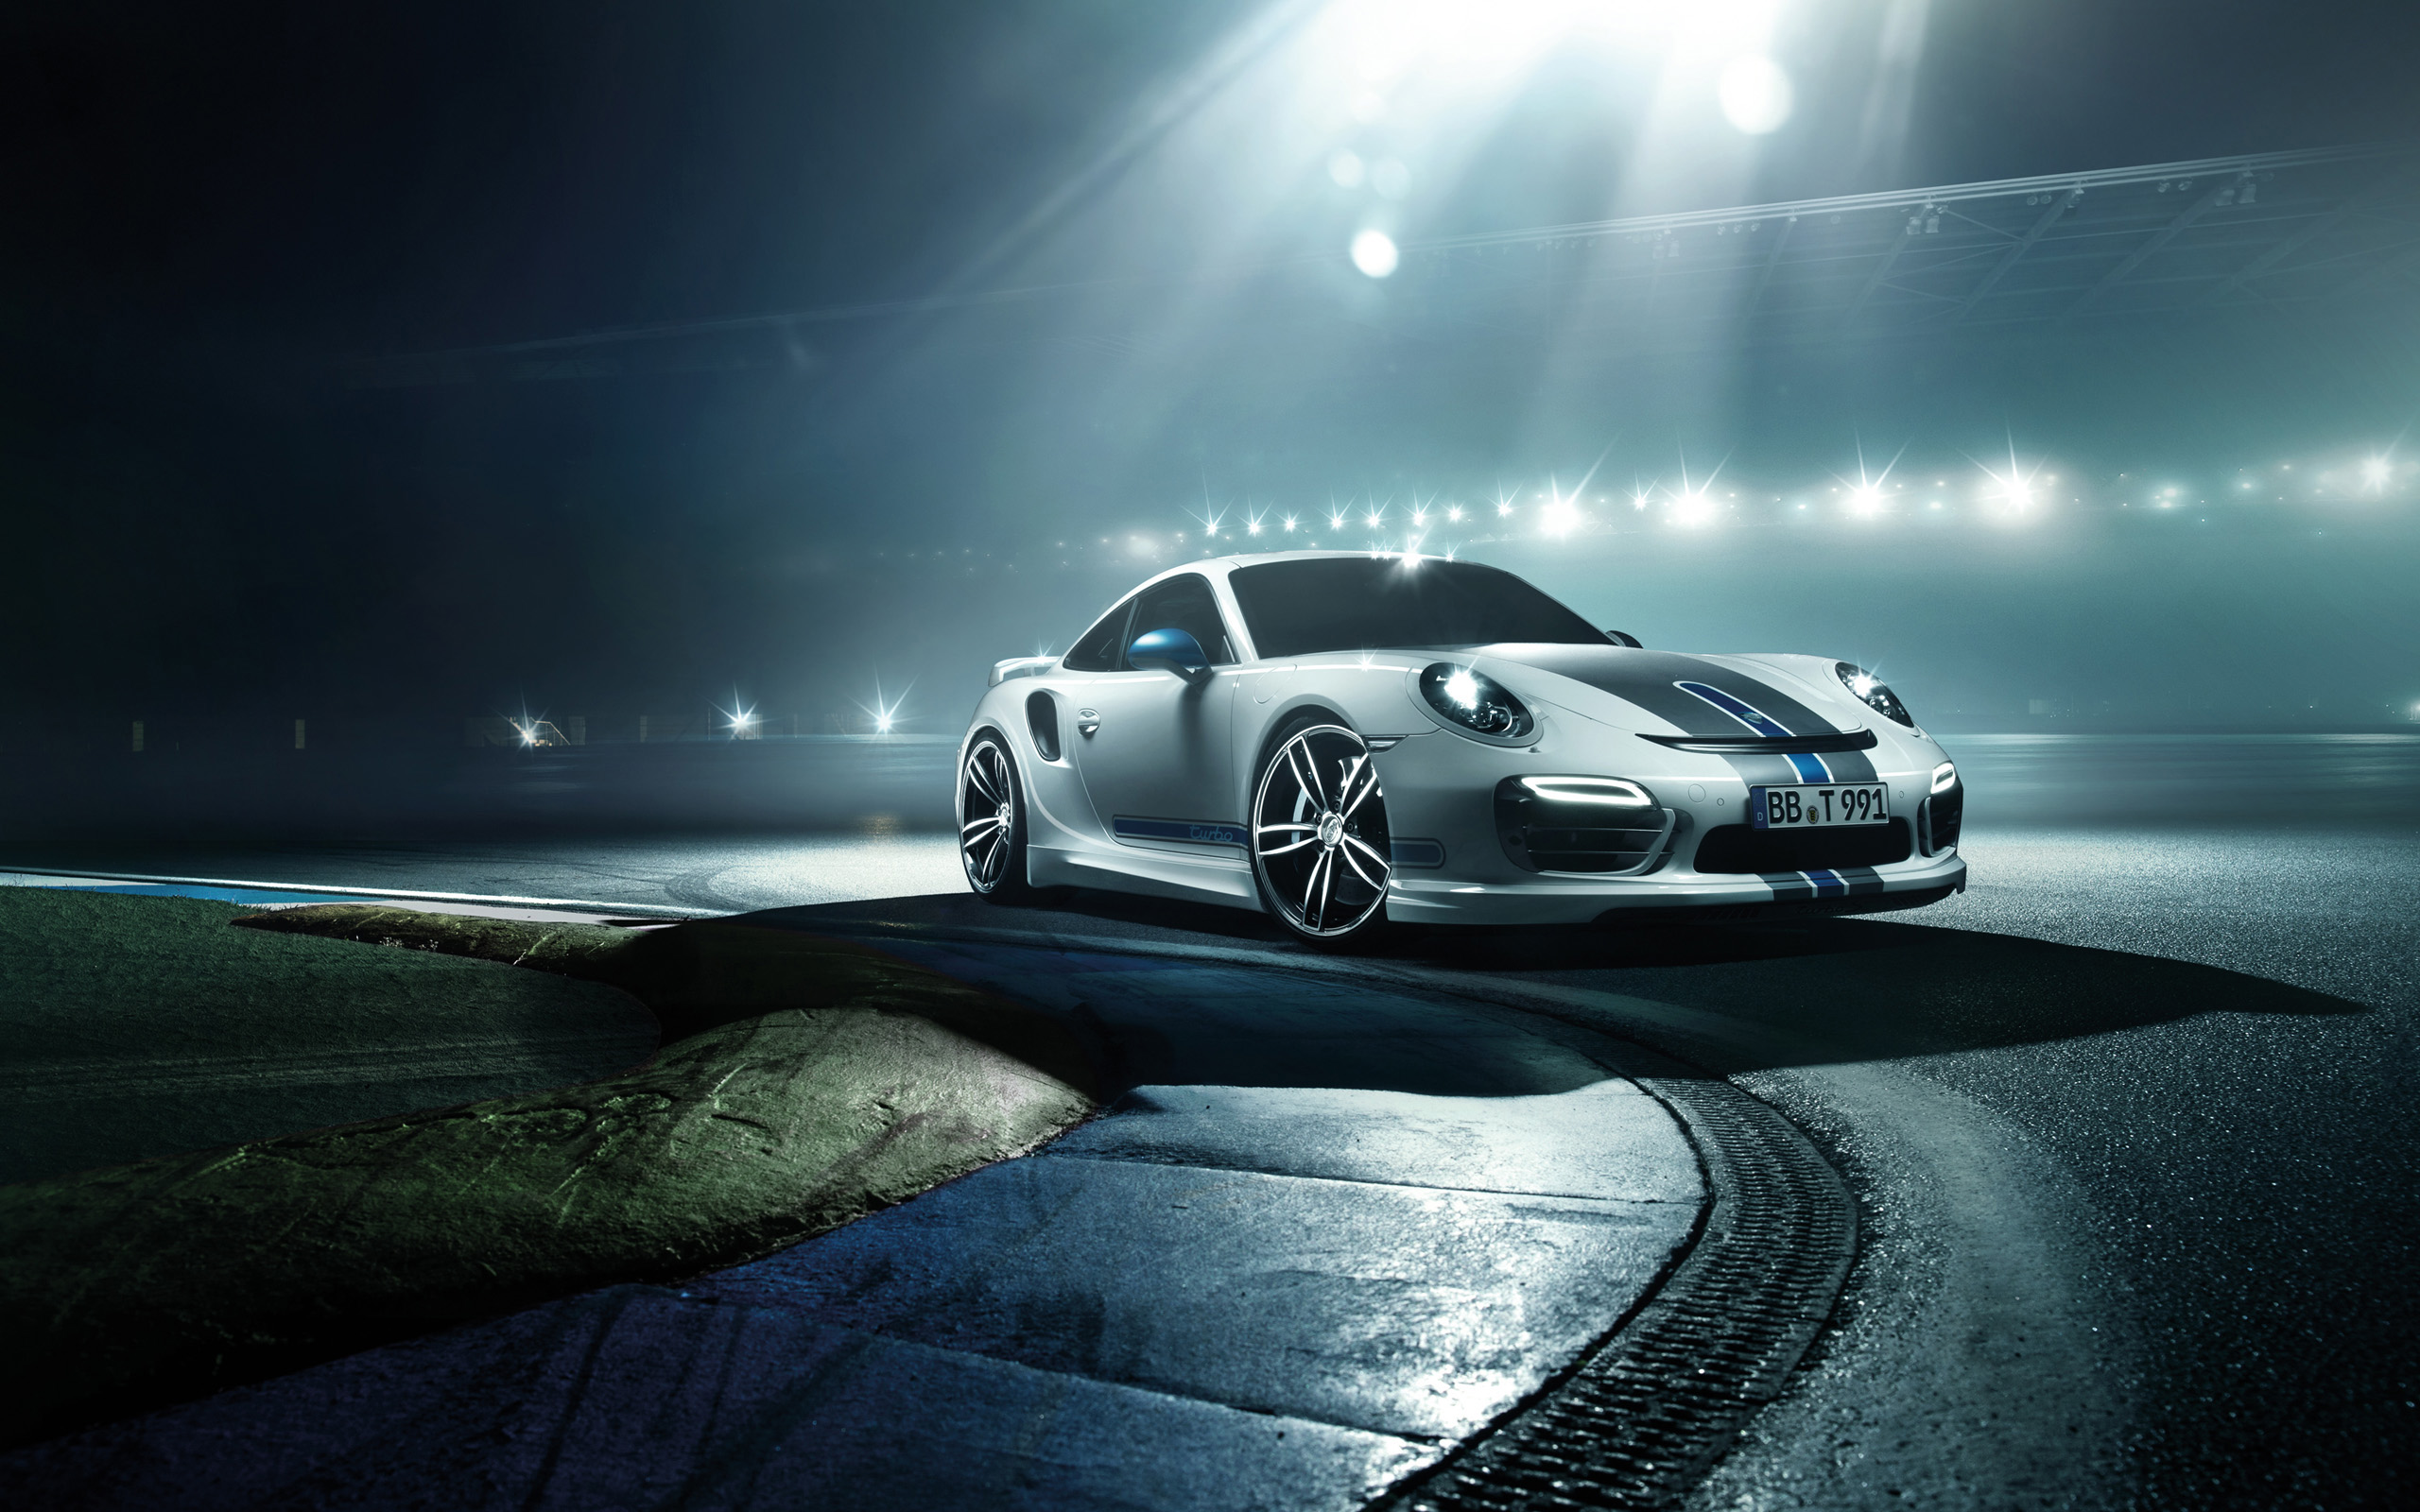 2014 Porsche 911 Turbo By TechArt Wallpapers HD Wallpapers 2560x1600